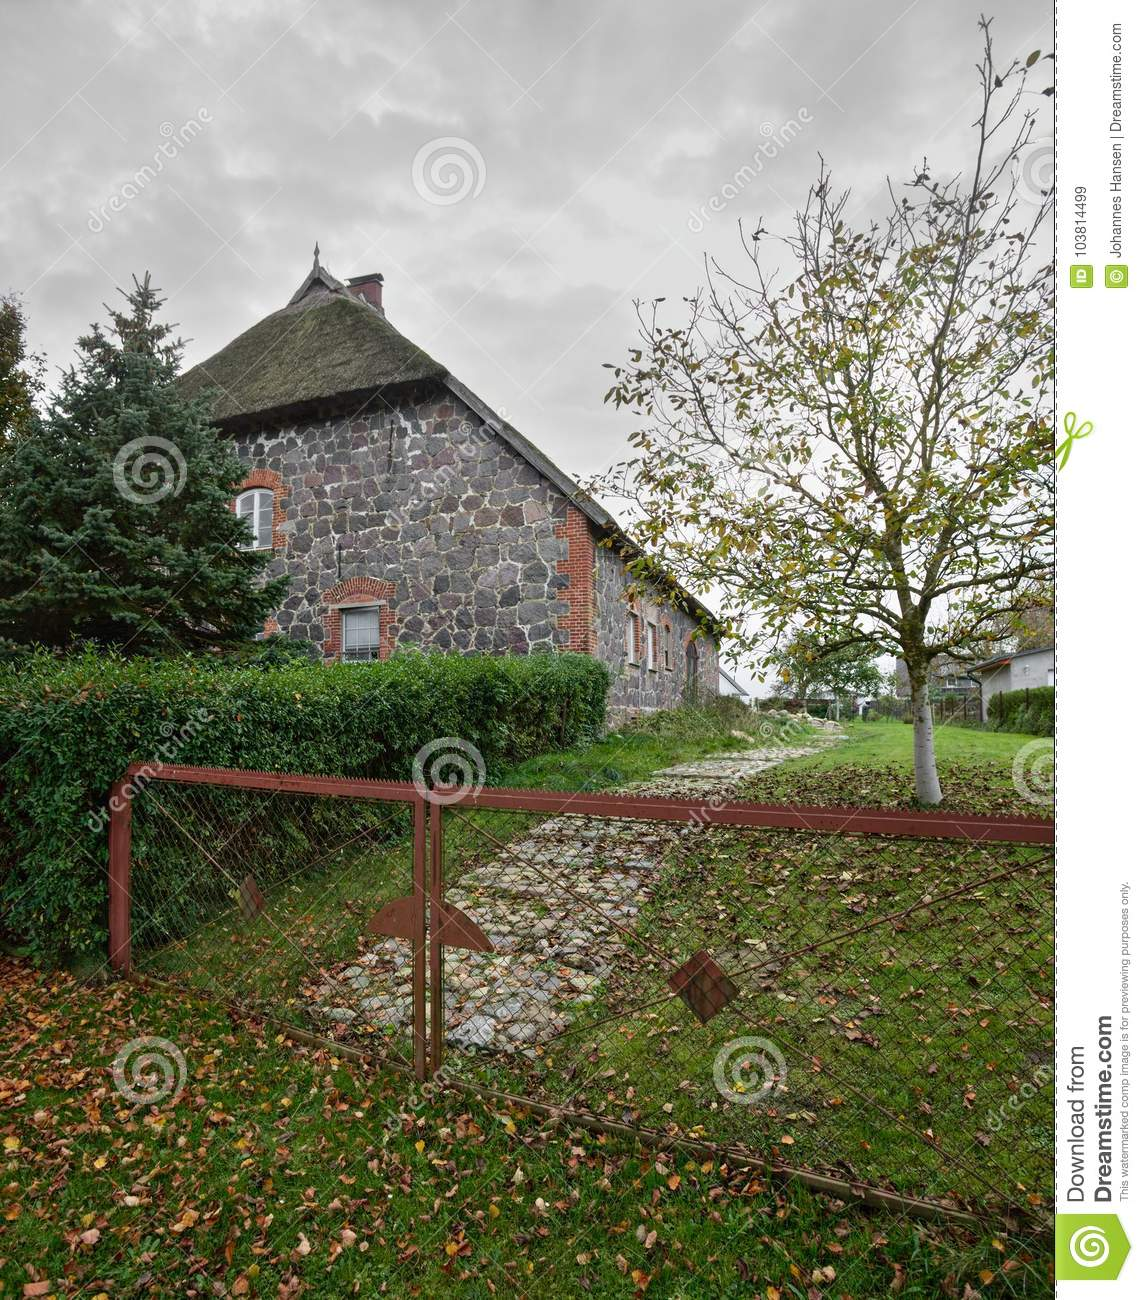 Reed roof fieldstone house listed as monument in Moeckow, Germany